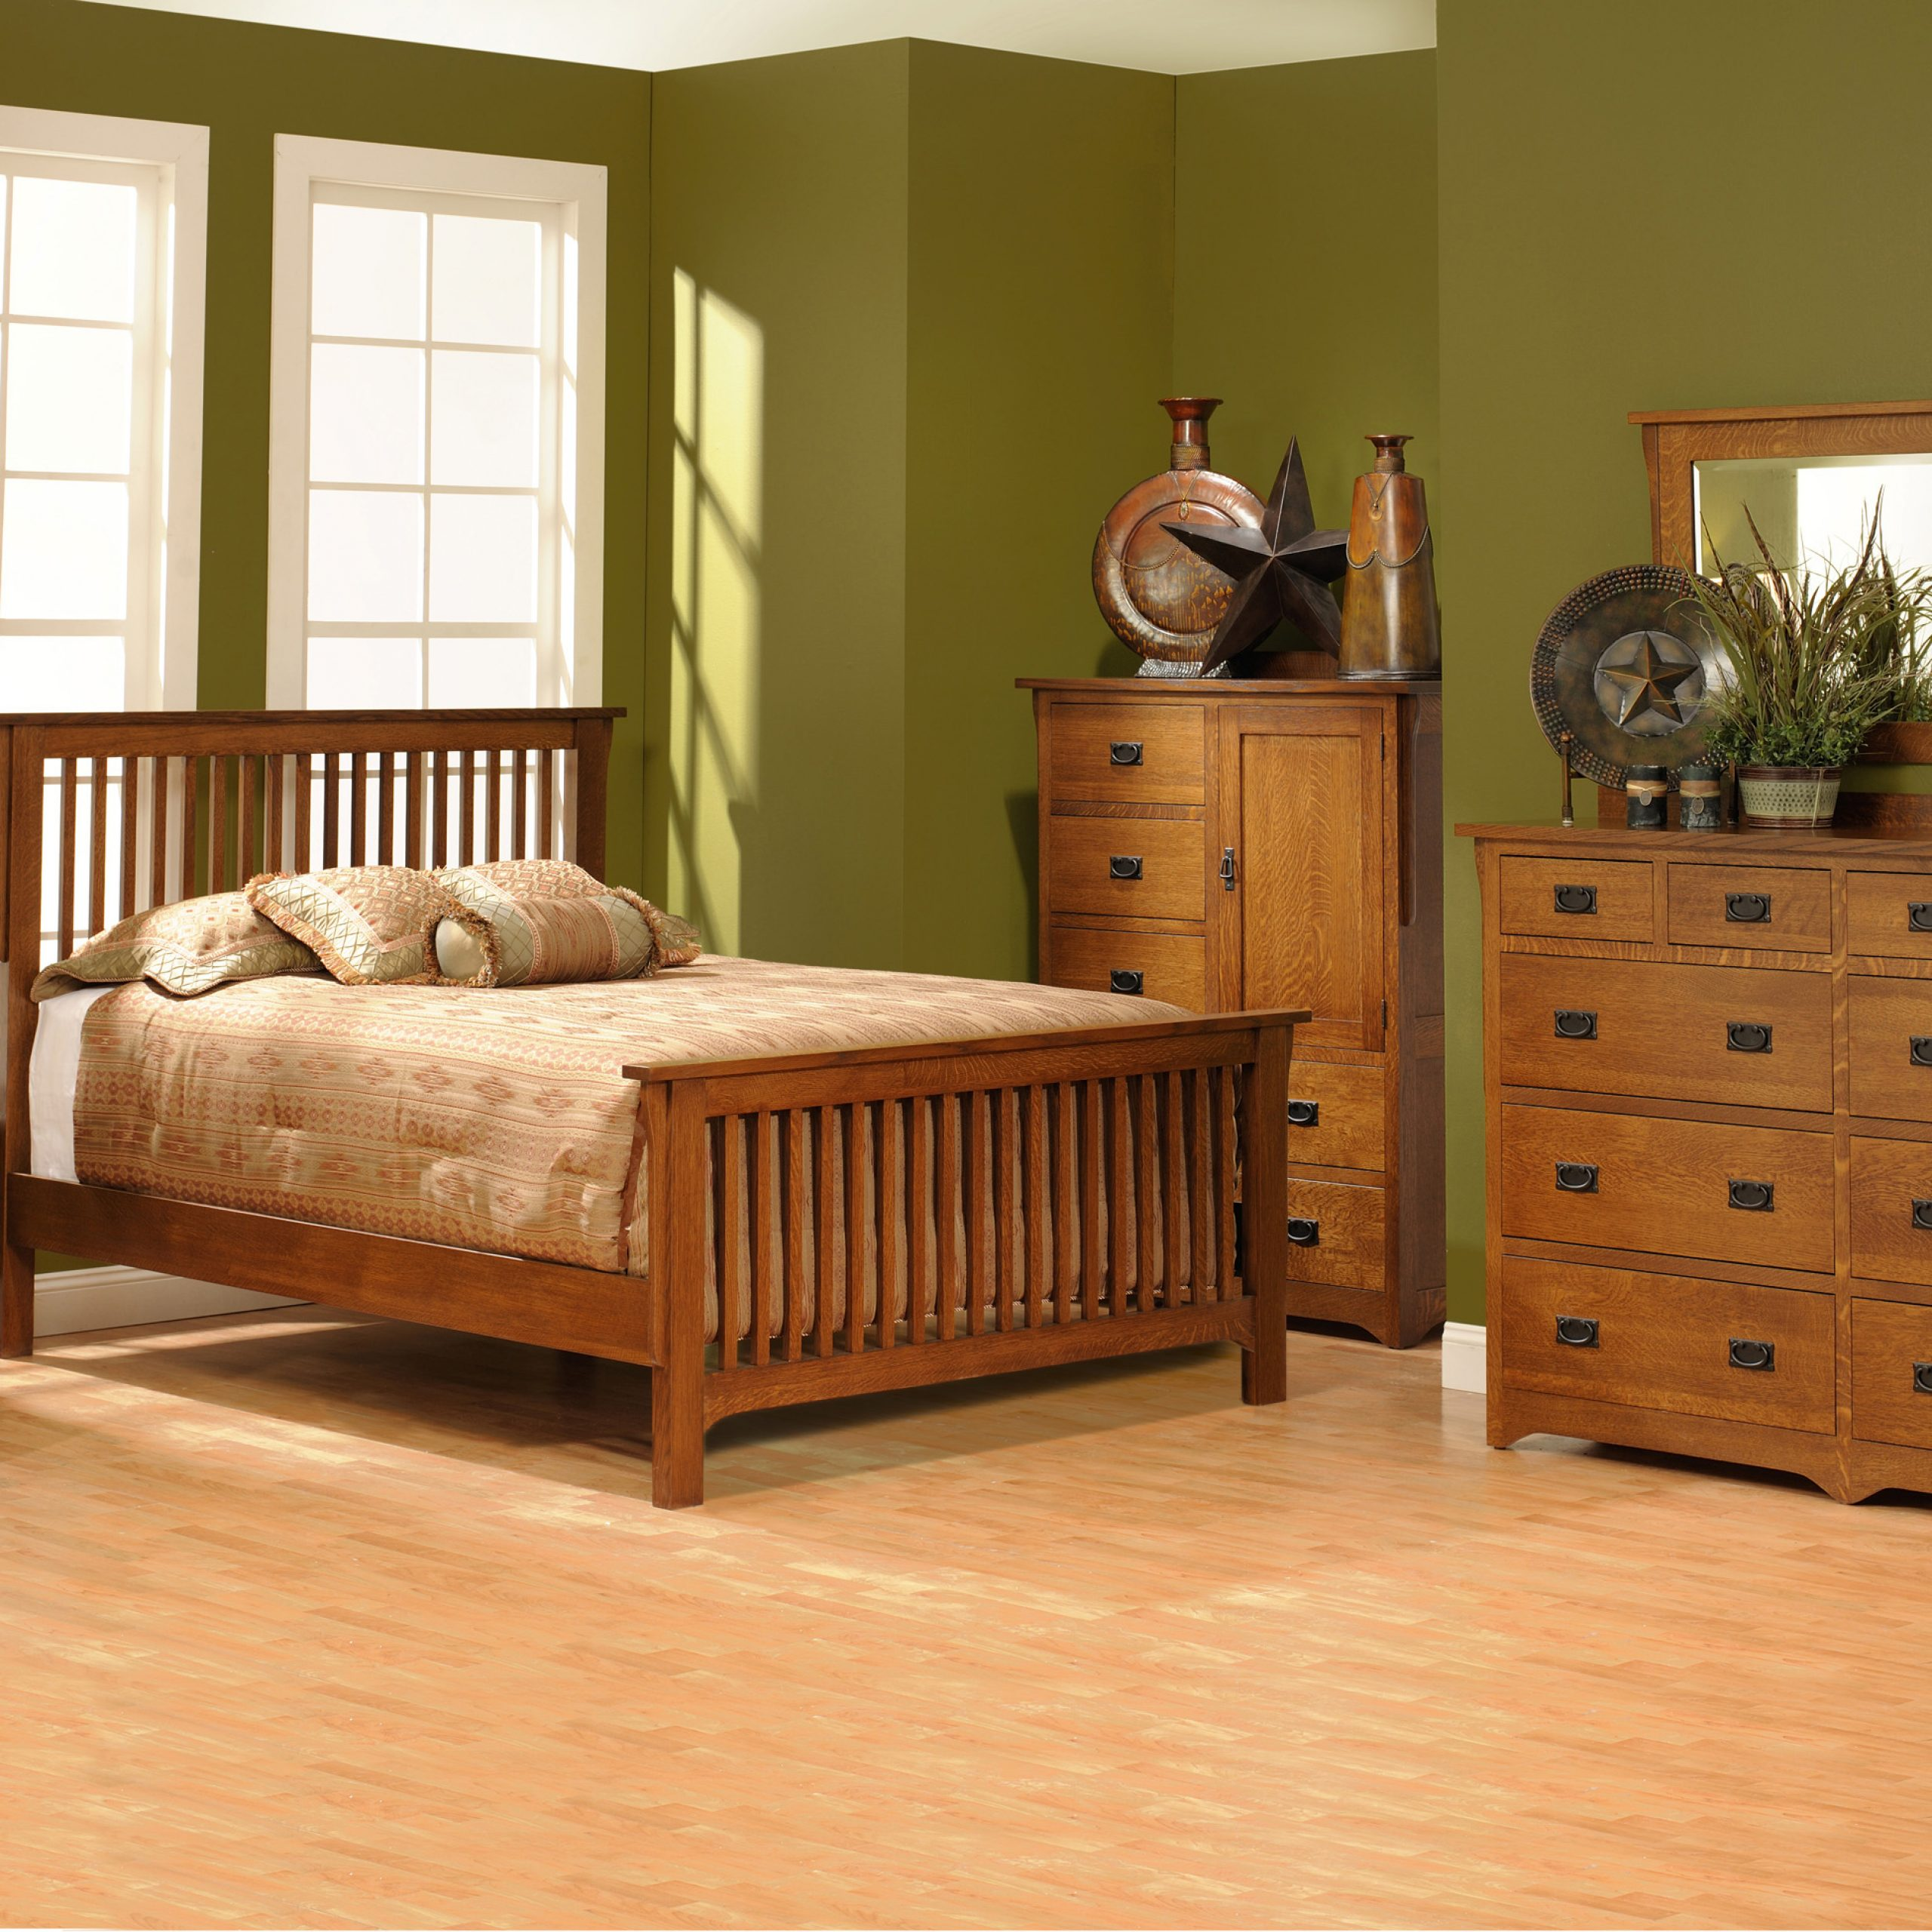 Mission Style Furniture: Amazing Arts And Crafts Movement Intended For Bedroom Sofas And Chairs (View 12 of 15)